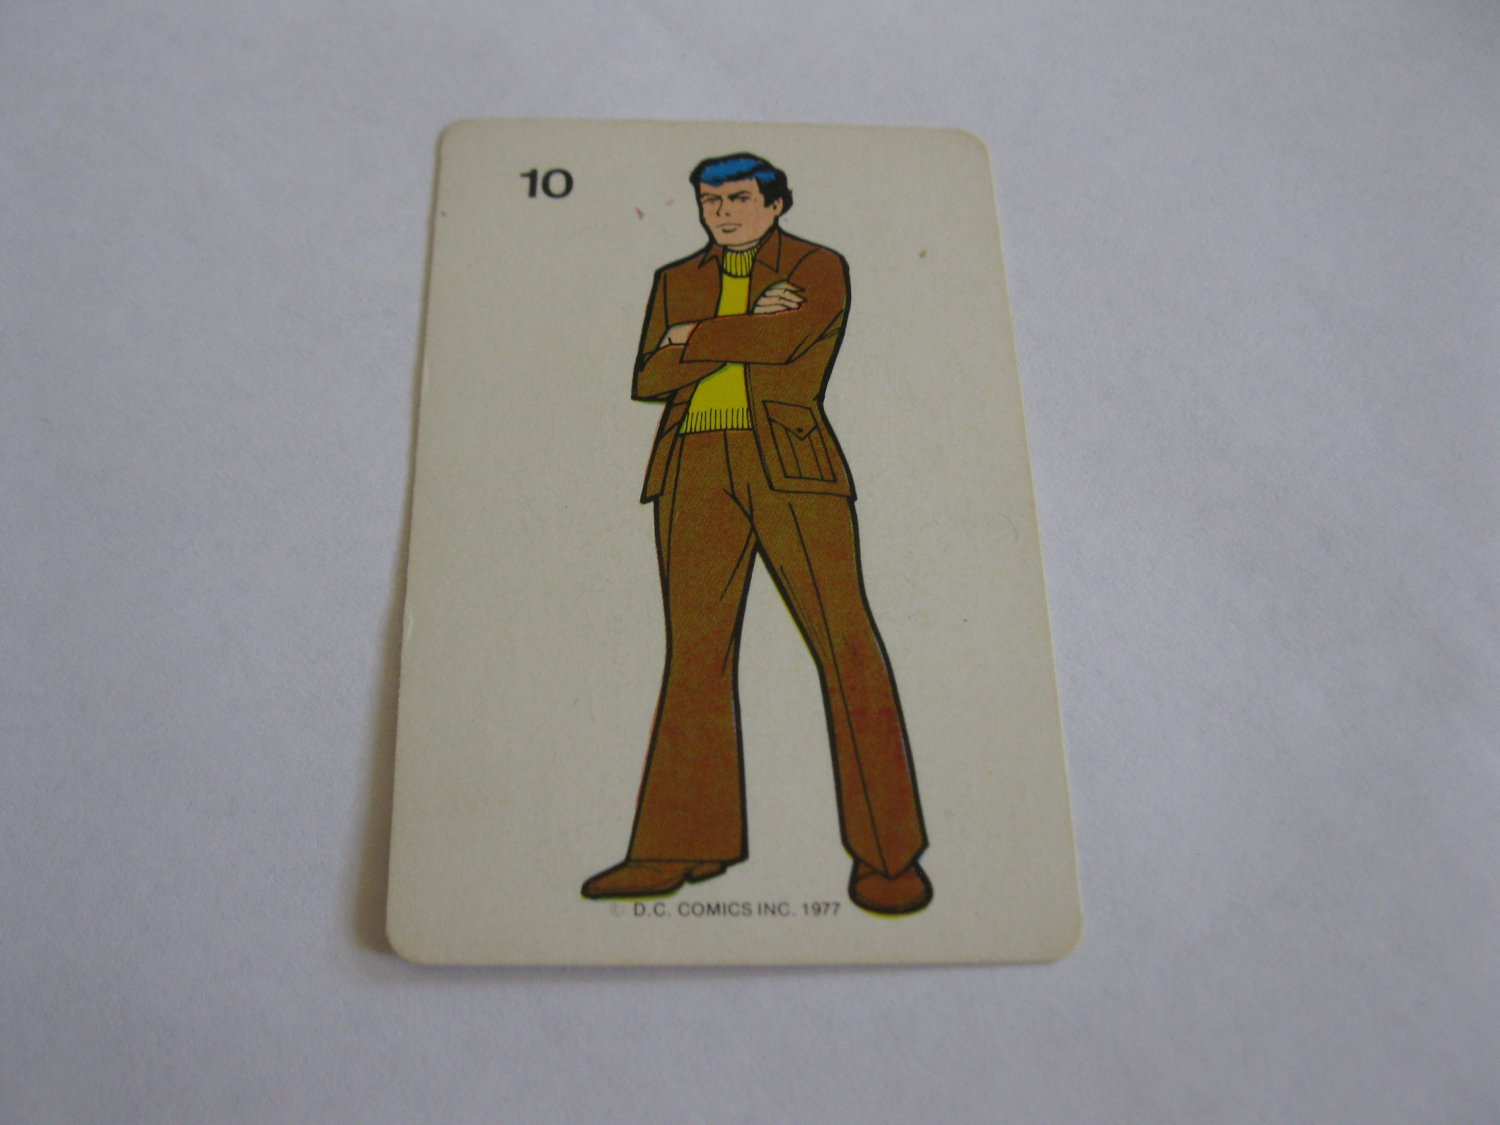 1977 DC Comics Game Card #10: Bruce Wayne